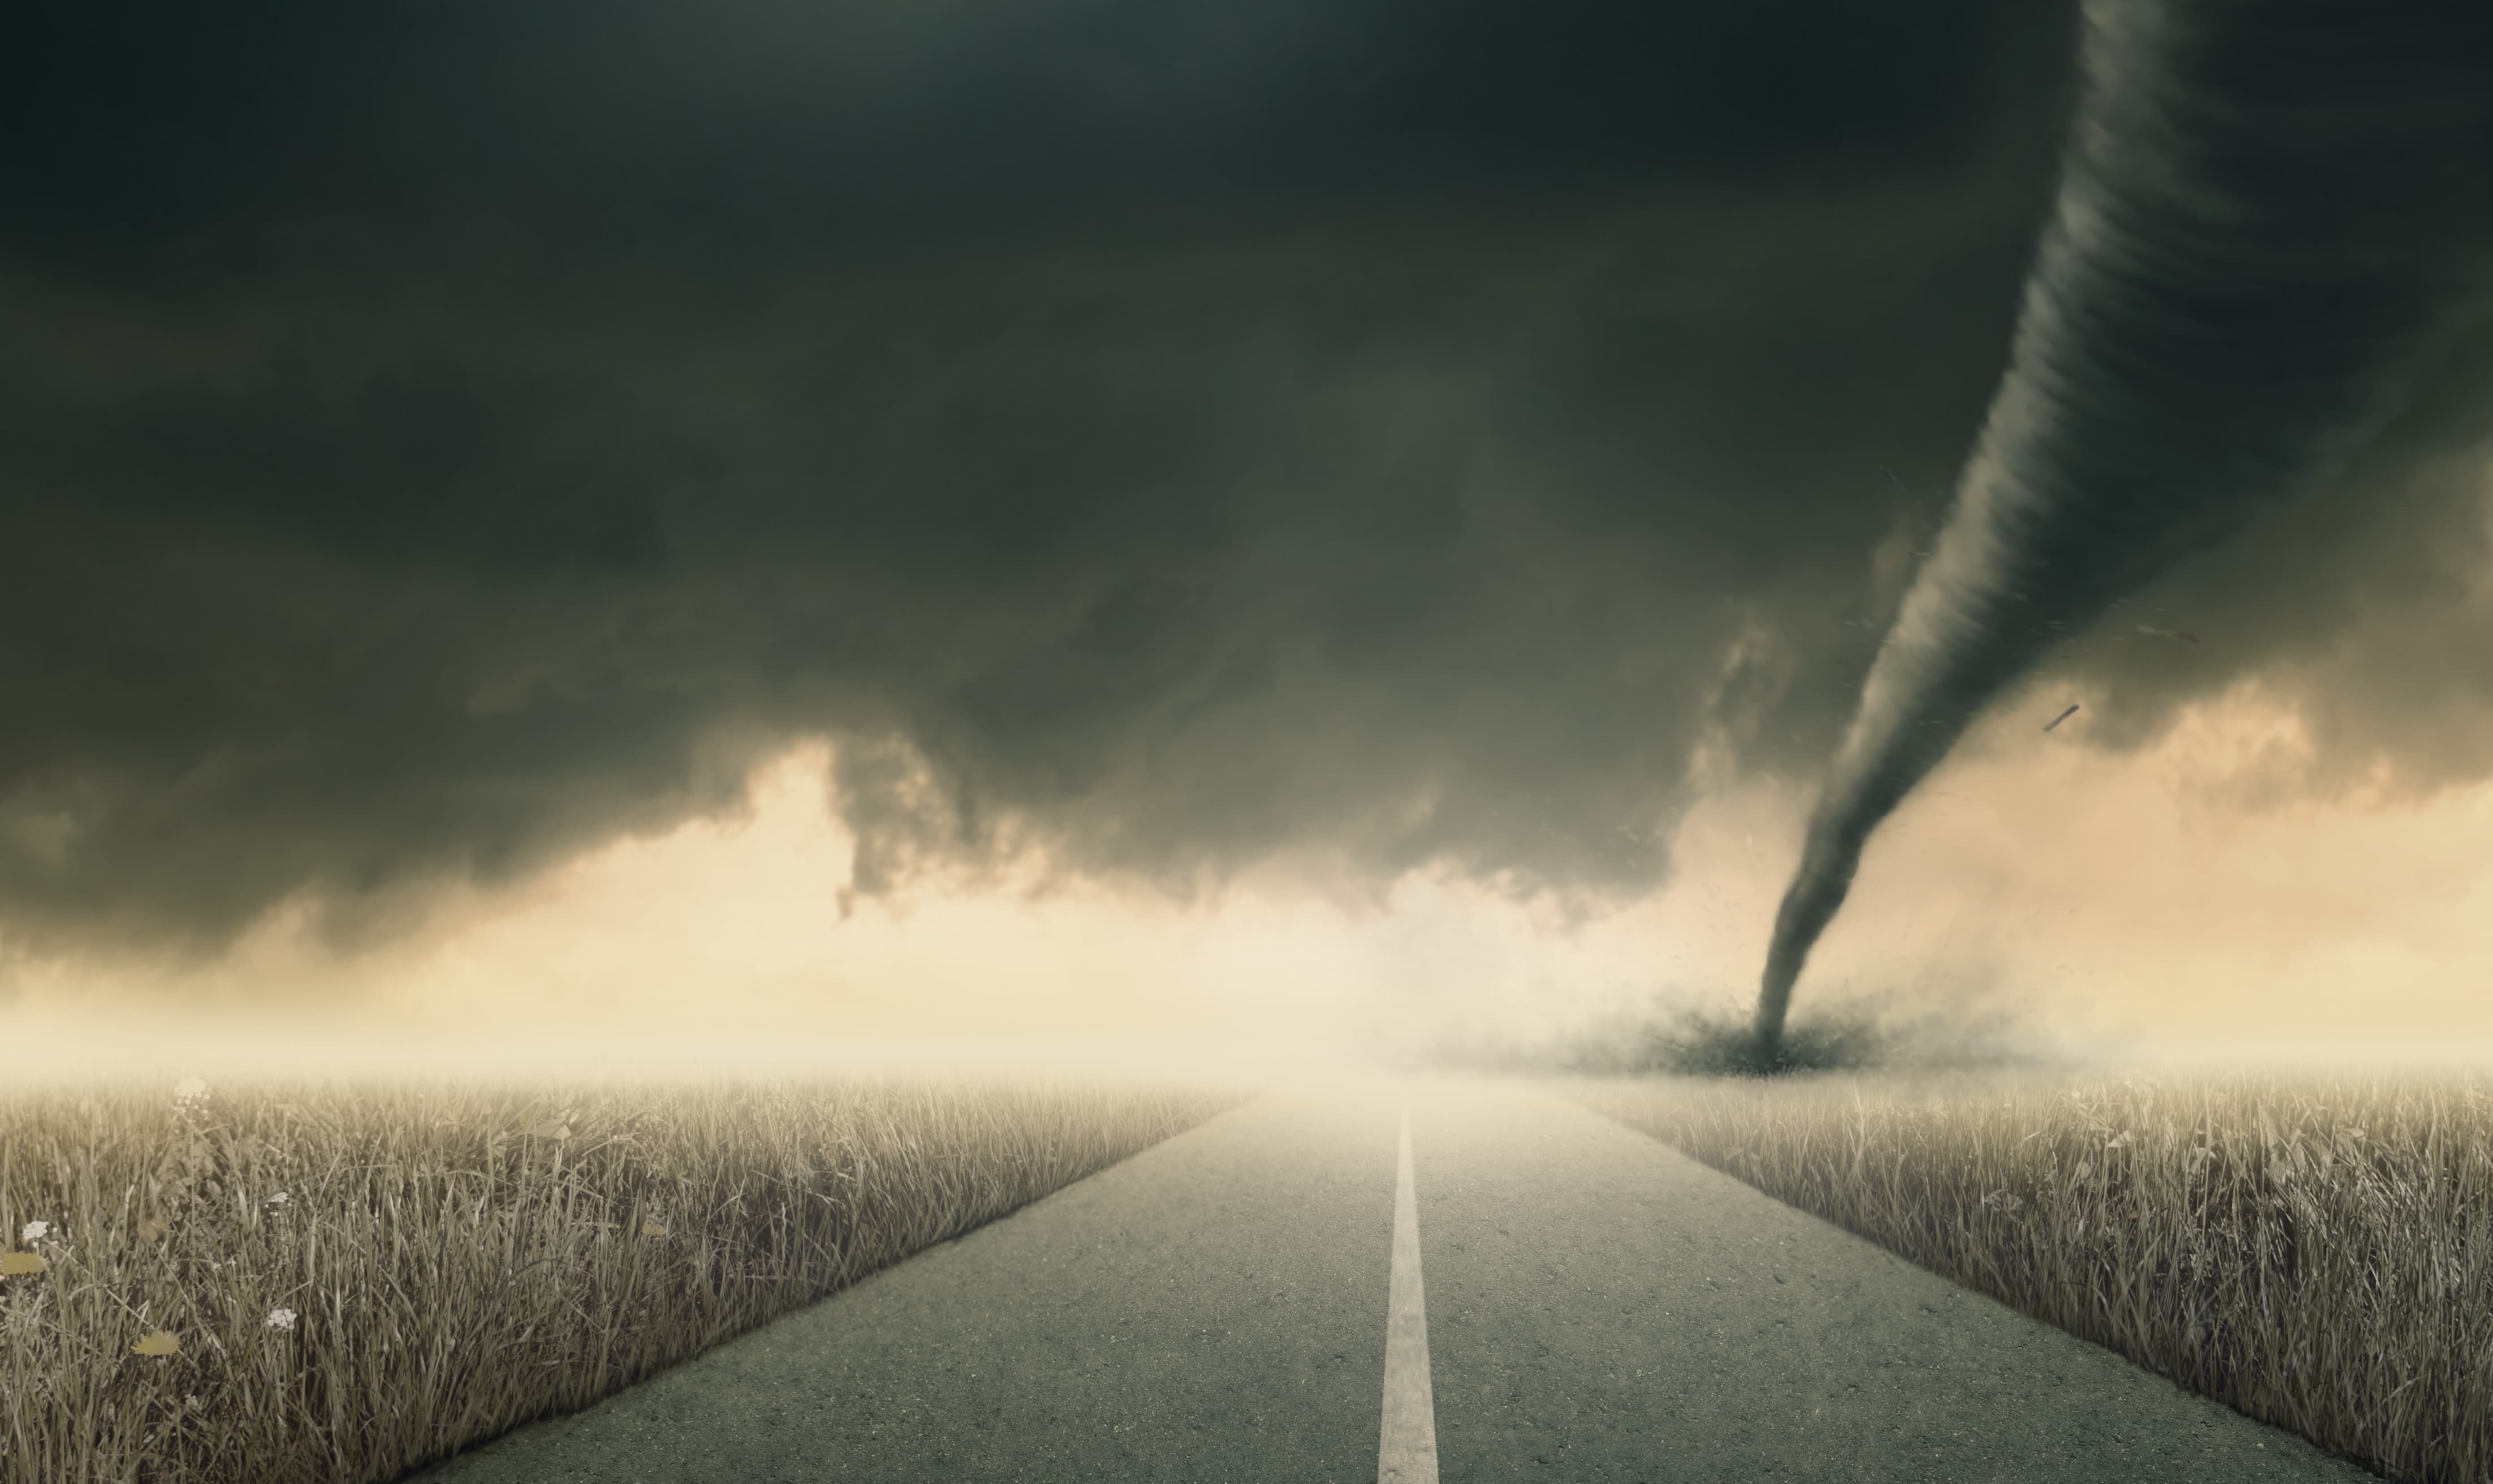 Tornado In Field Near Road